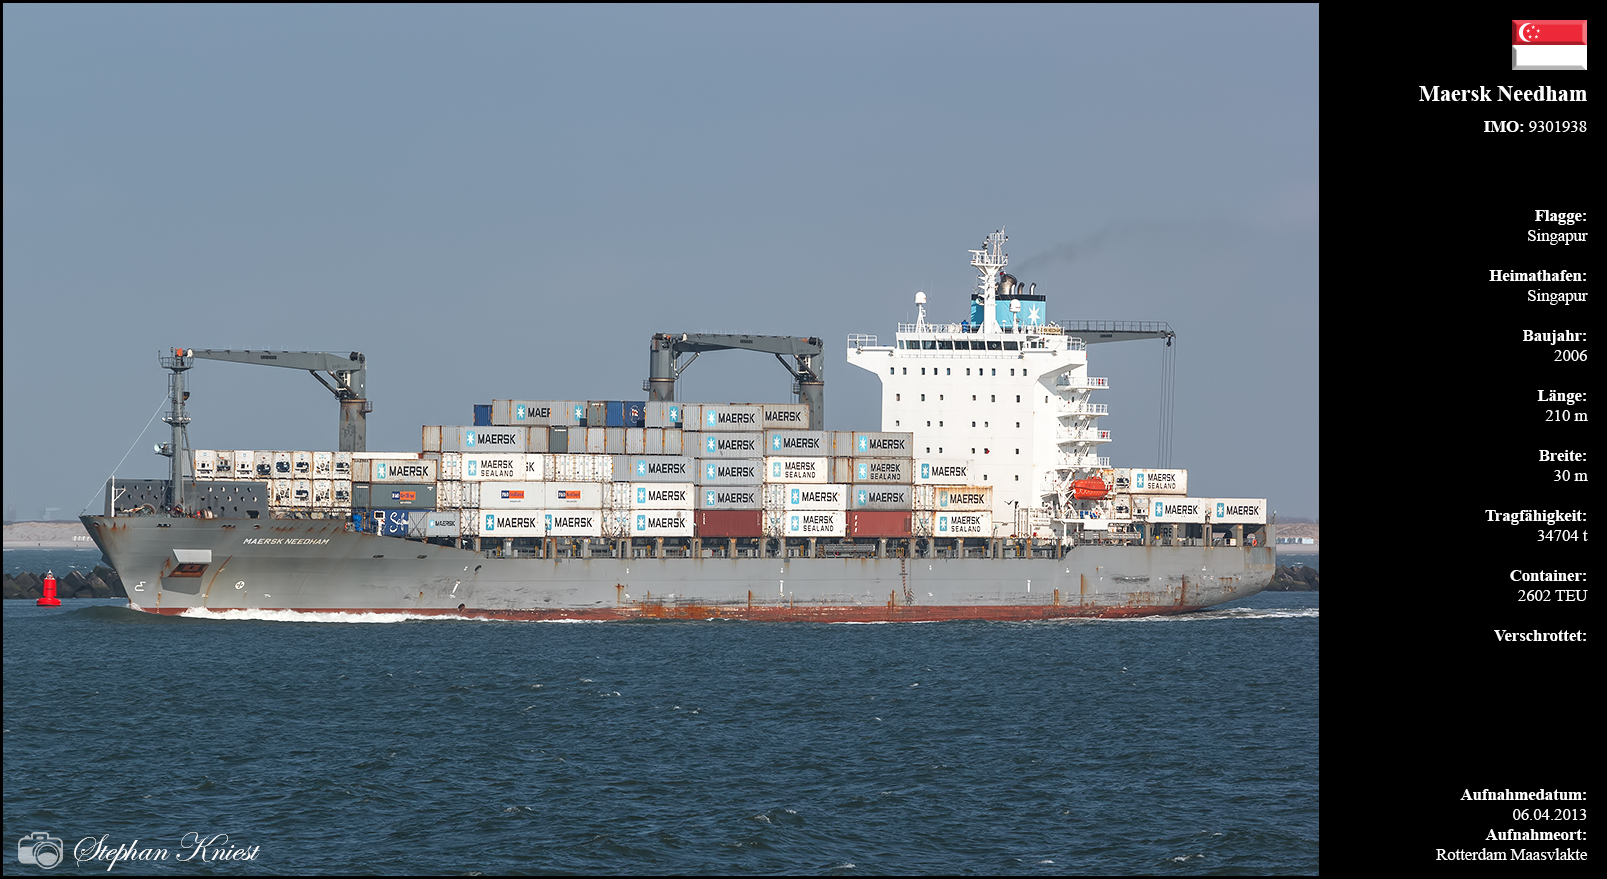 Maersk-Needham